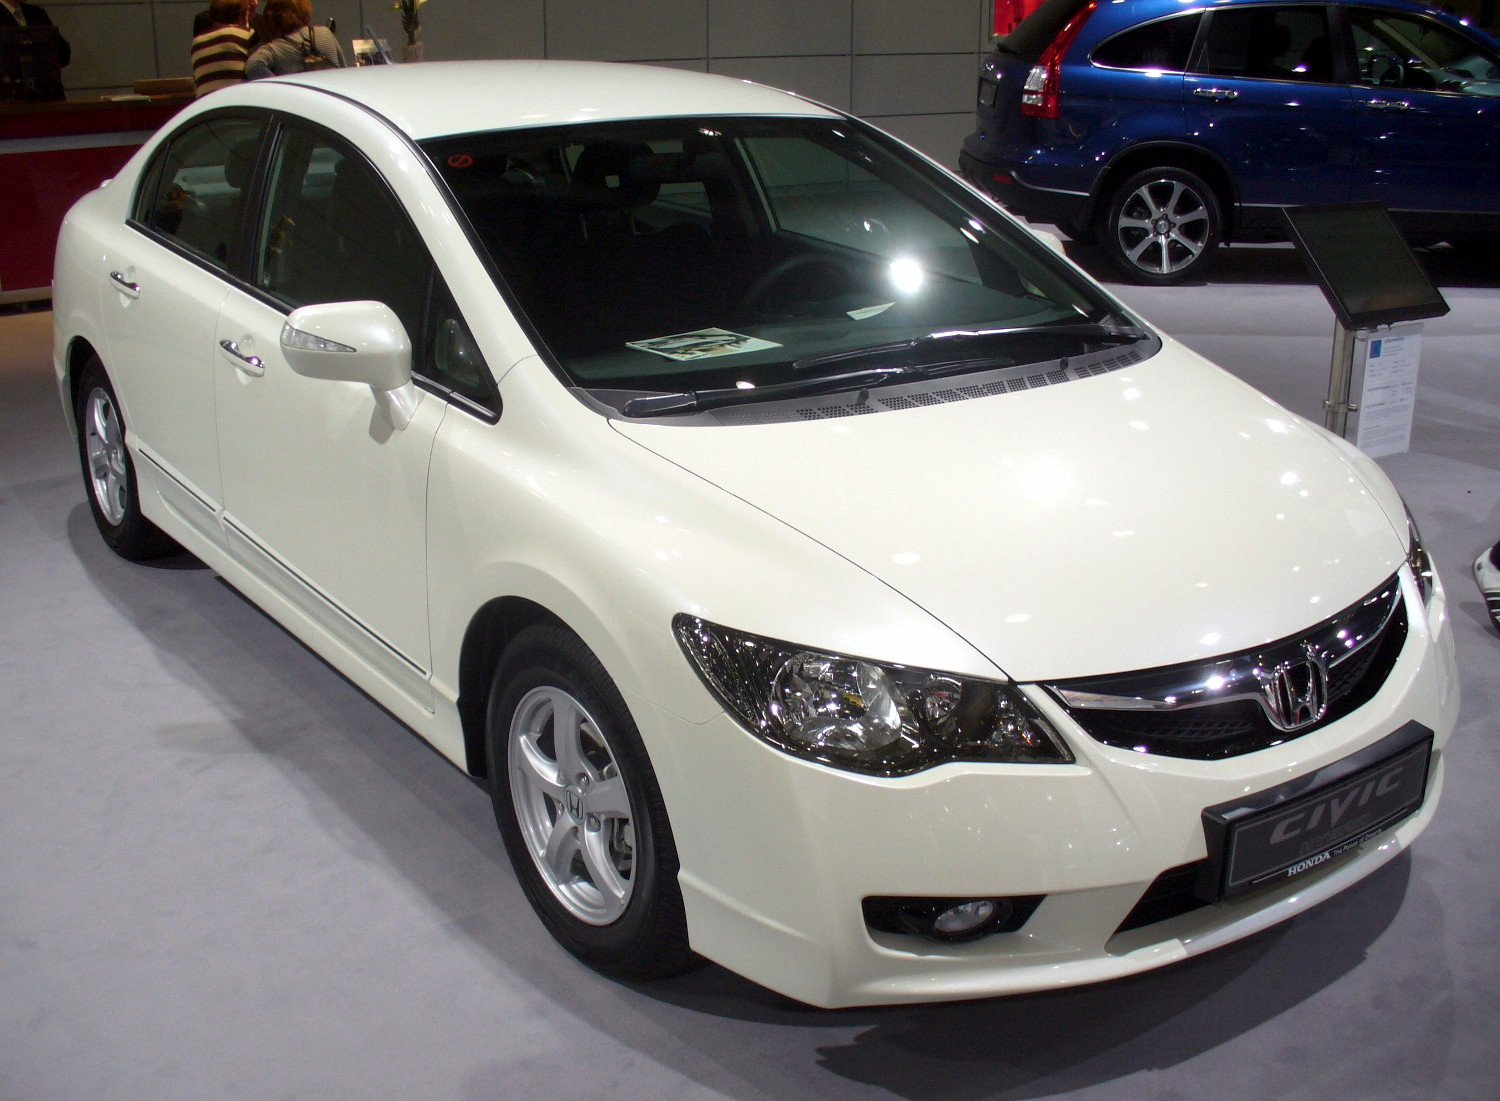 file honda civic ima jpg   wikimedia commons